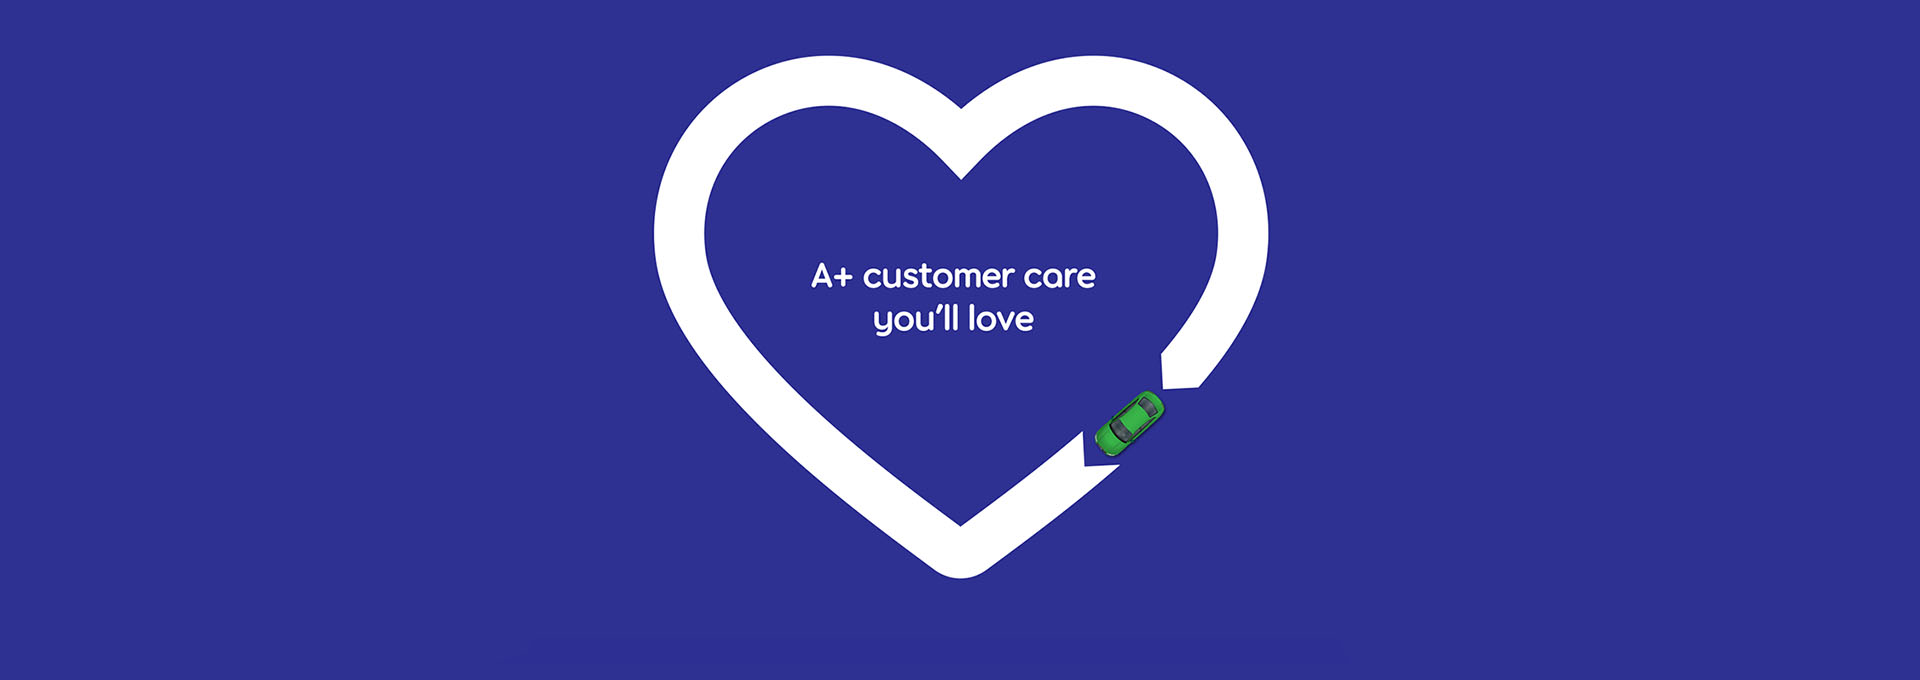 a-plus_customer_care